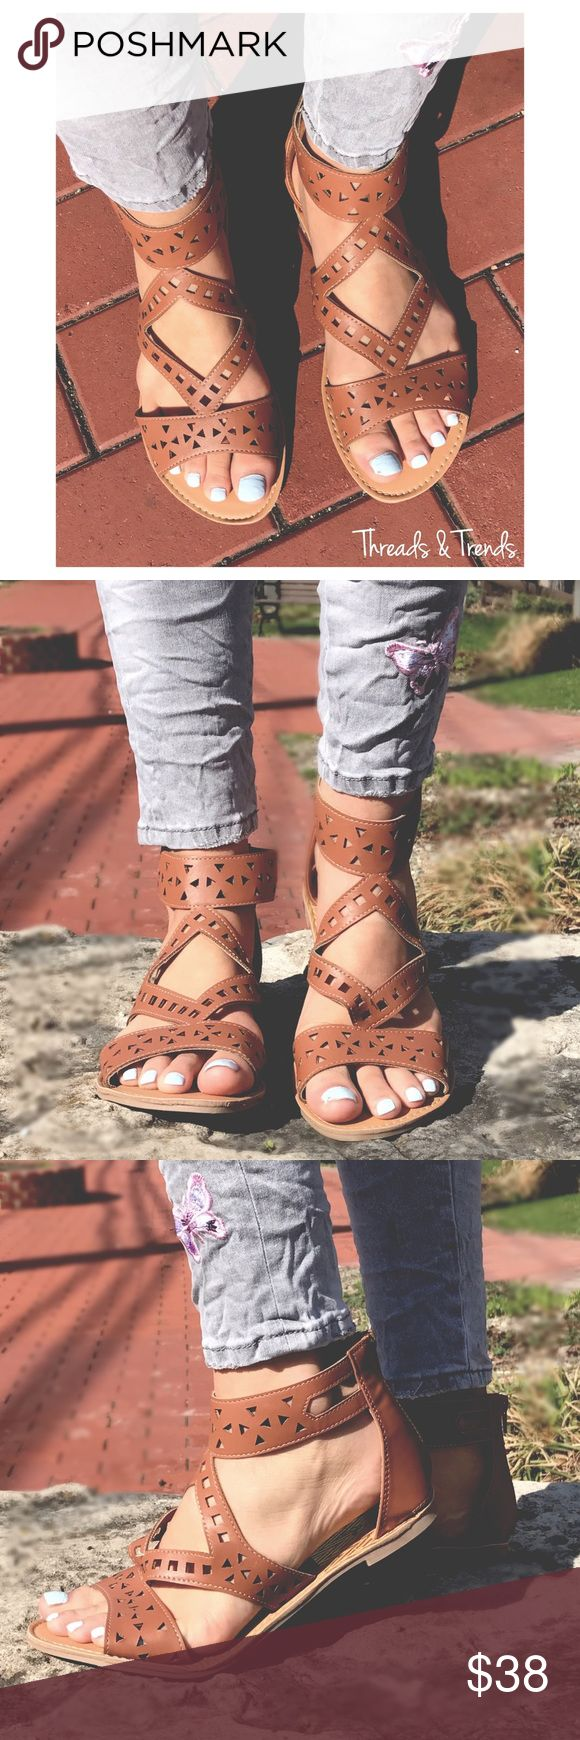 Summer Sandal Booties Warm weather Sandal meets booties. Get both looks in these classic brown color Sandal Booties with a zip up closures on back ankles. Made of a Faux Leather. A great color for matching with summer wardrobes. Threads & Trends Shoes Sandals